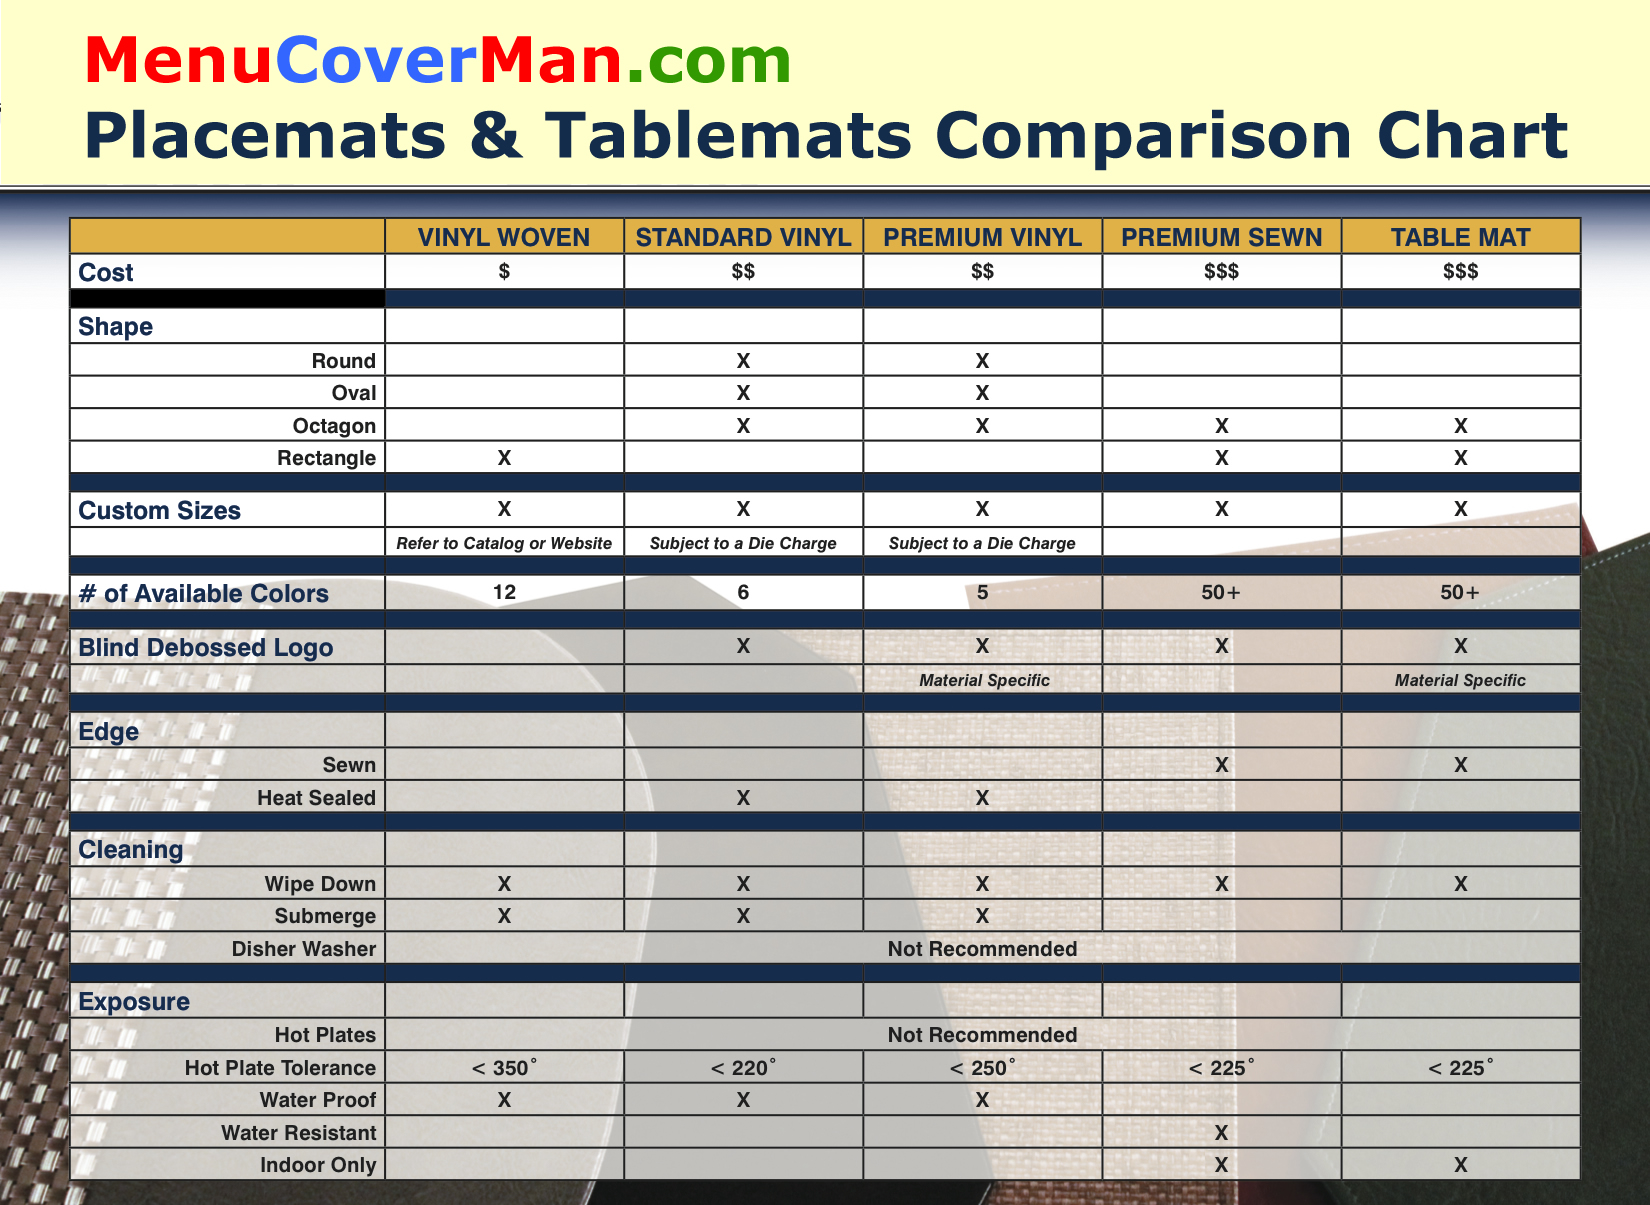 Placemats and tablemats feature comparison chart.